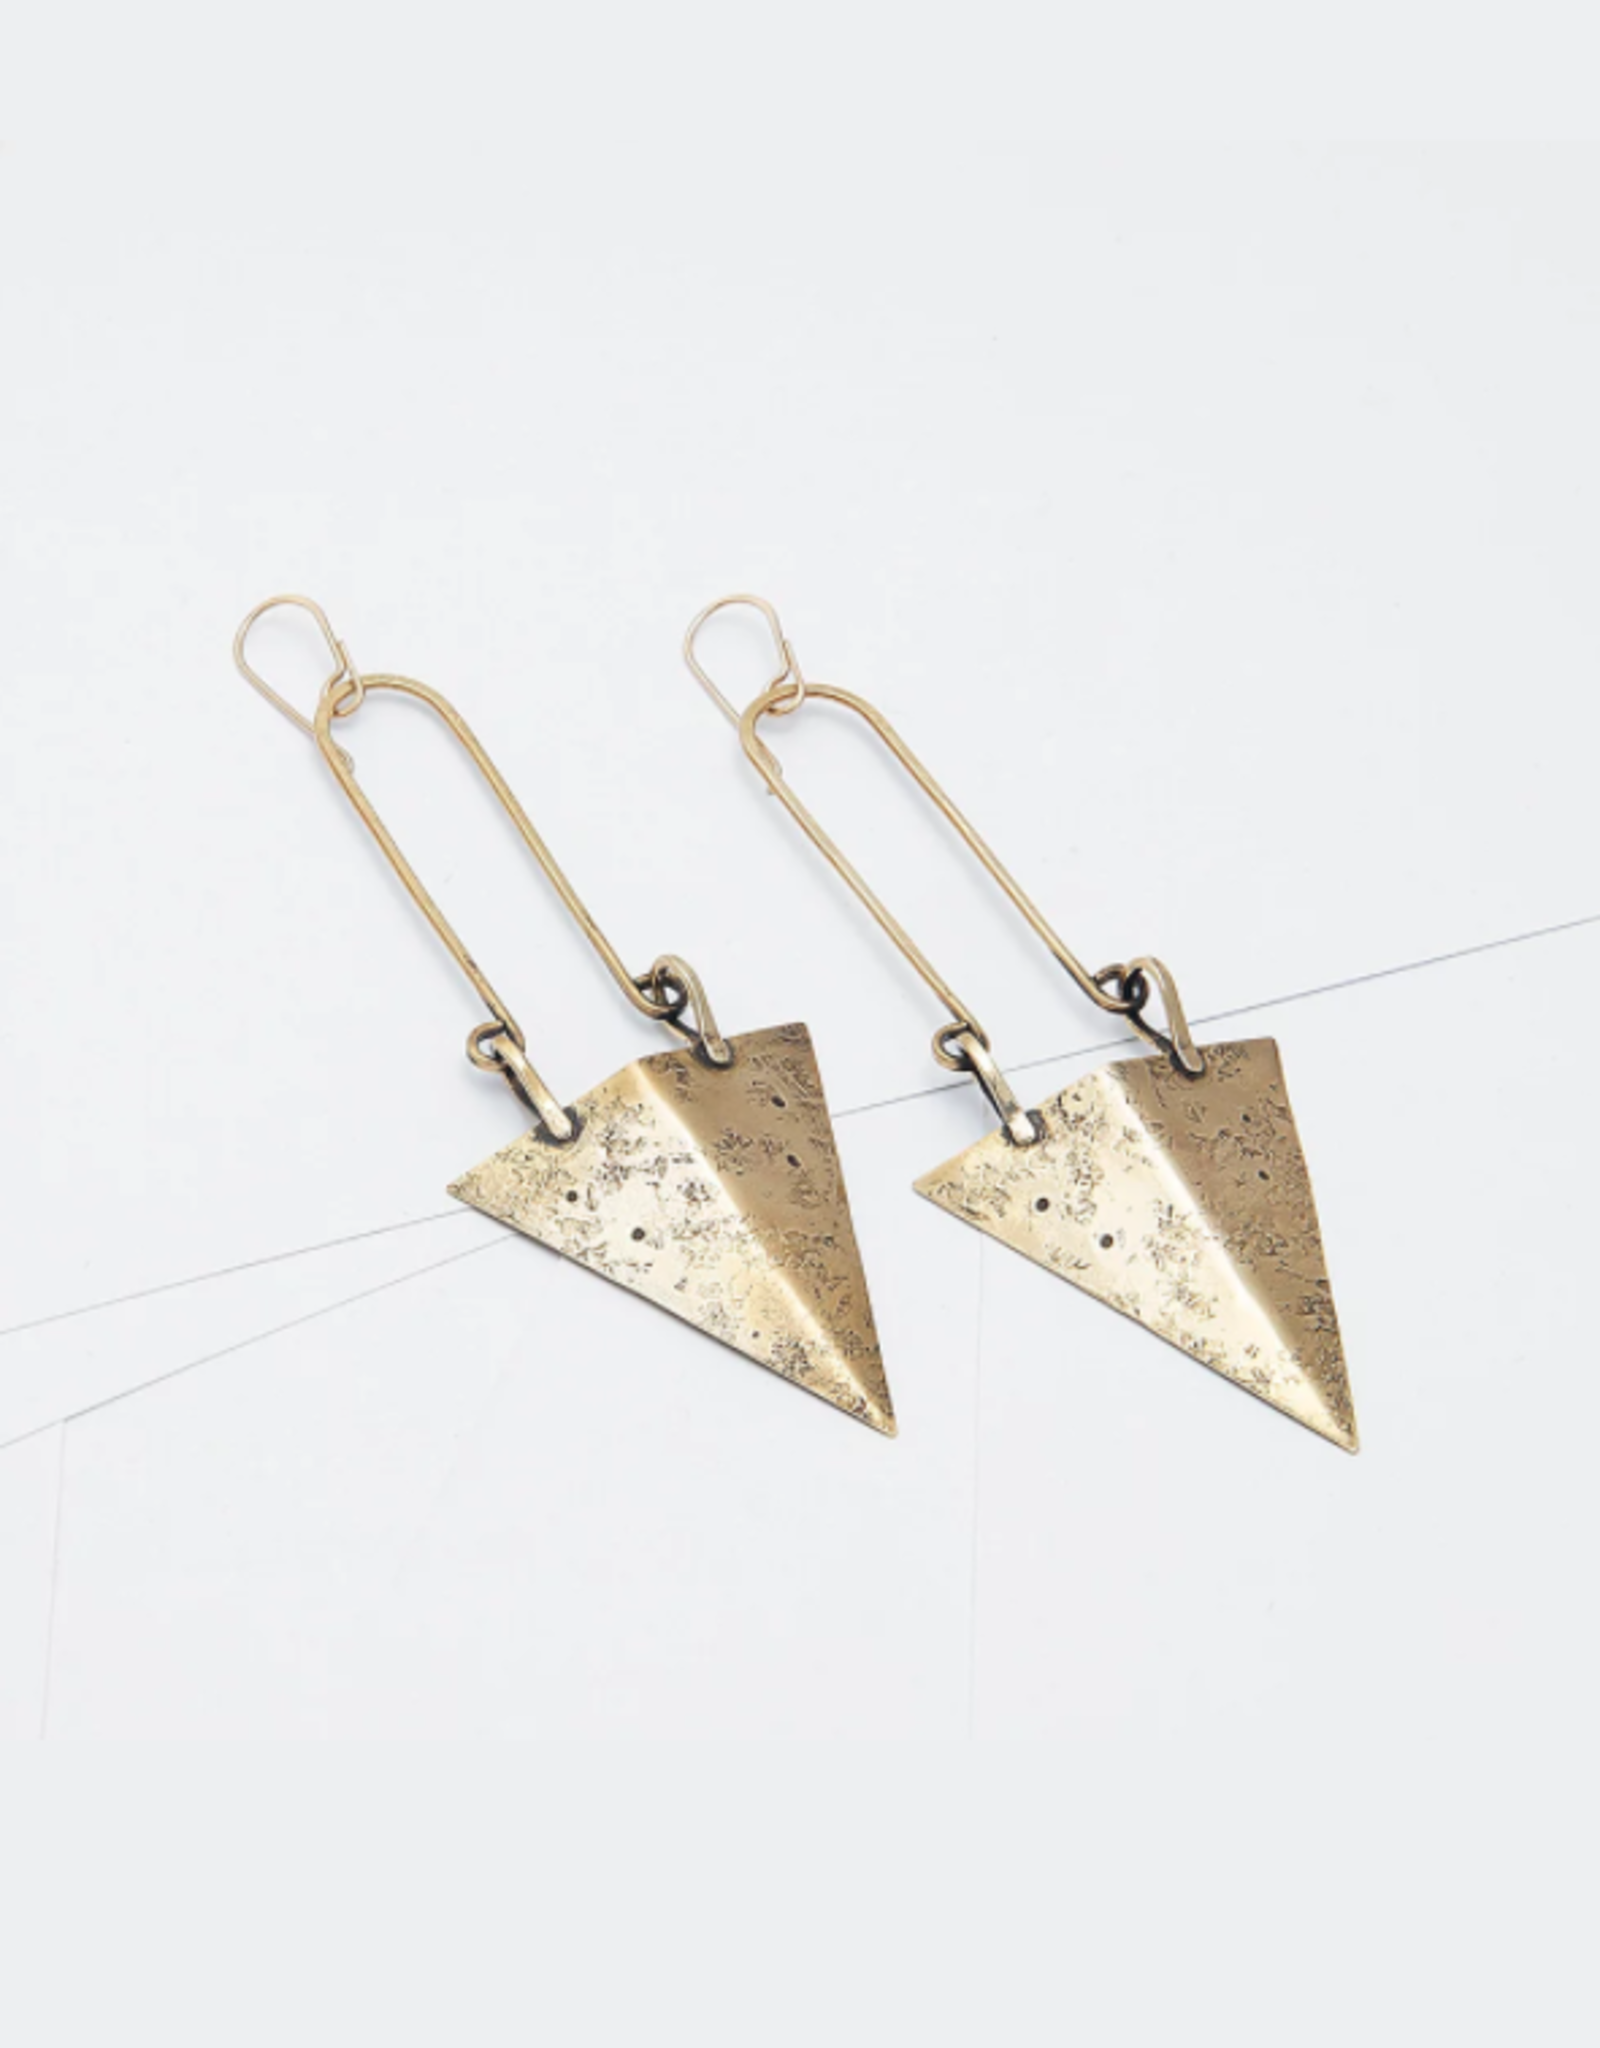 From the Reliquary Brass Brigand Earrings - From the Reliquary